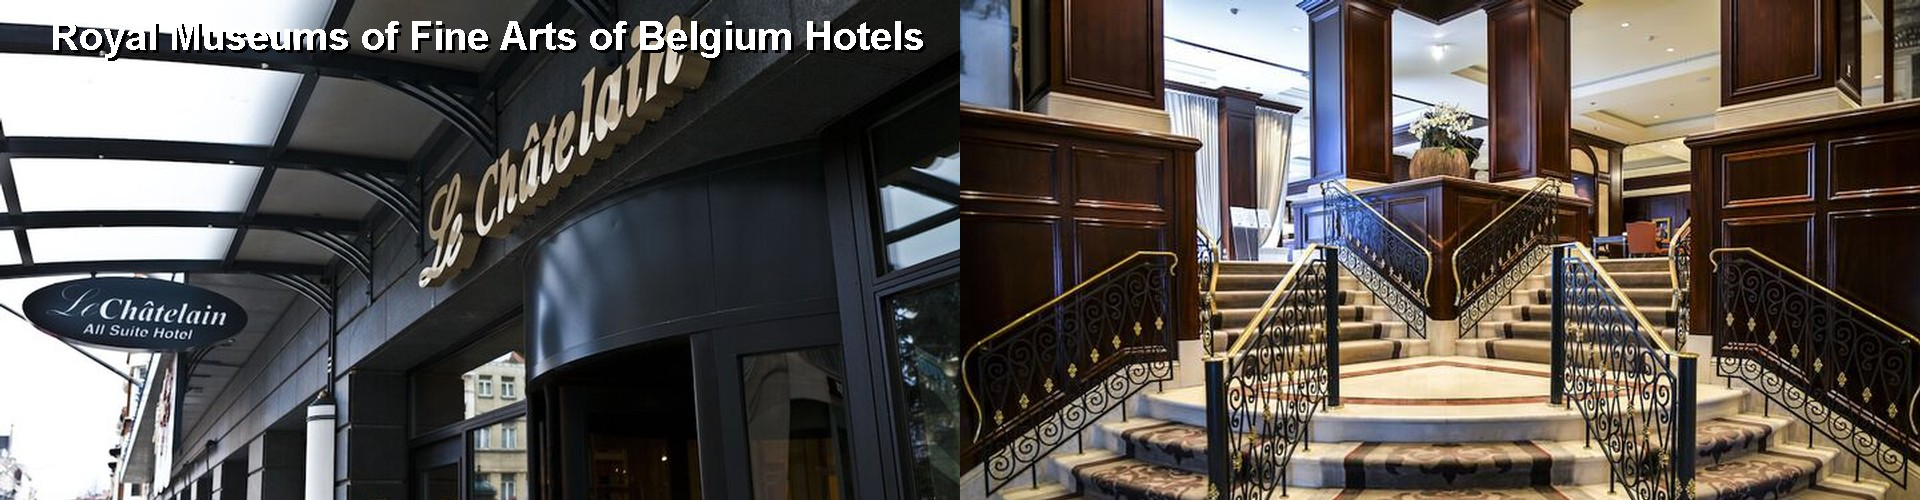 5 Best Hotels near Royal Museums of Fine Arts of Belgium